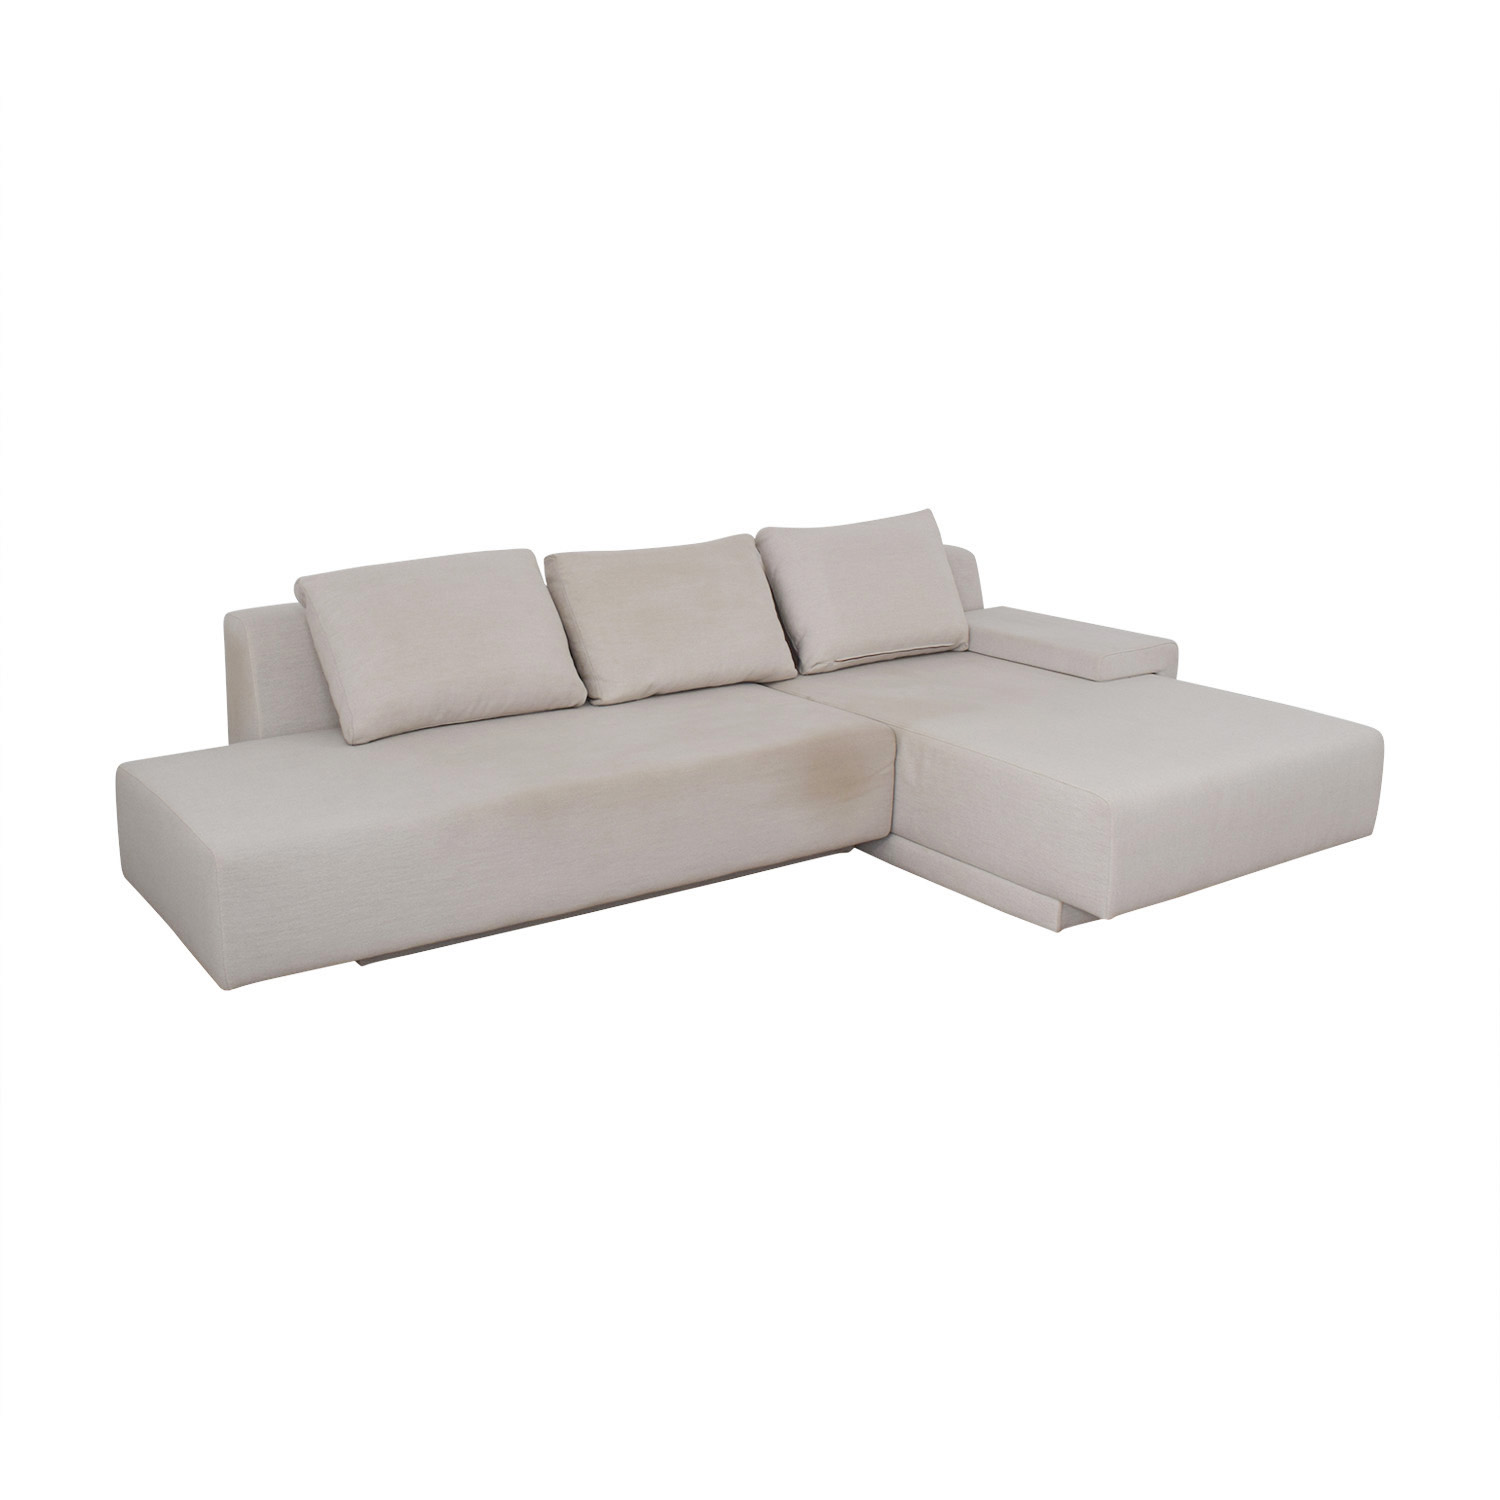 Viccarbe Viccarbe White Sectional white